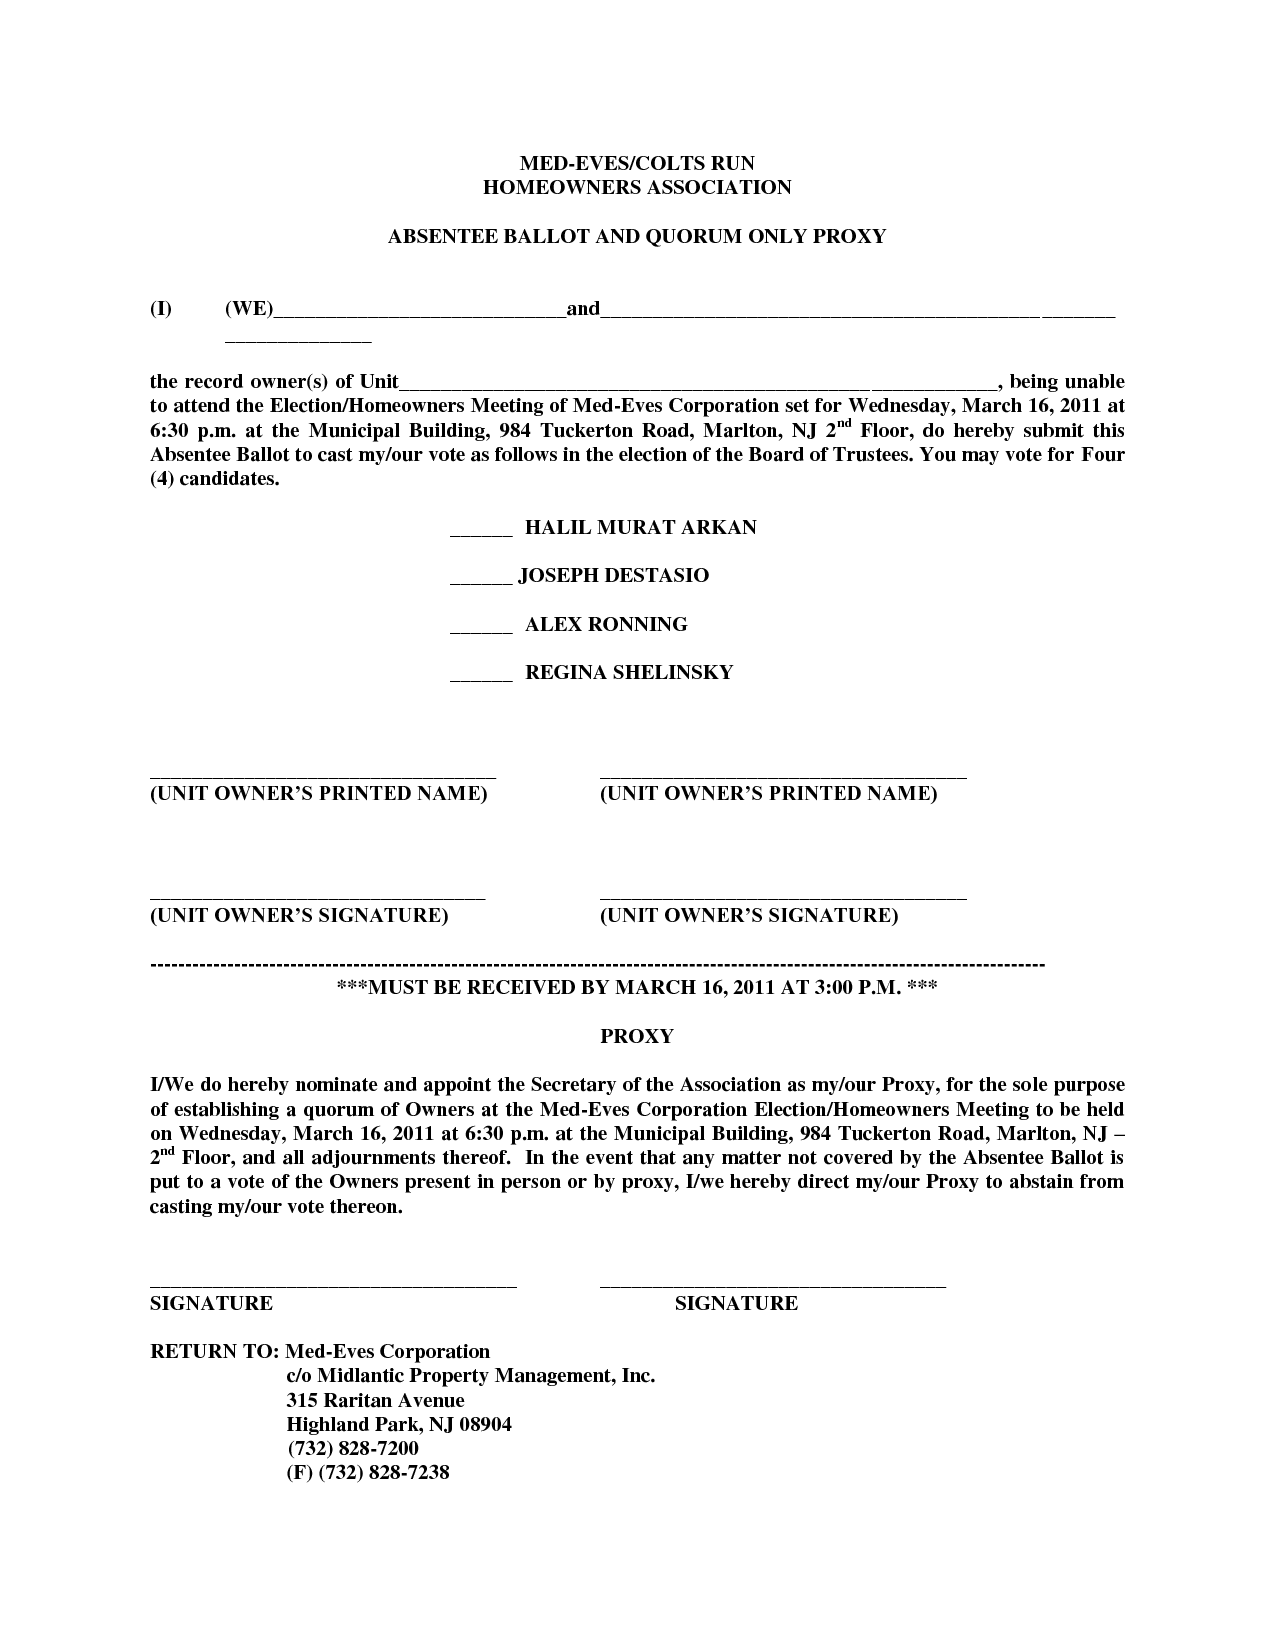 Proxy For Members - hoa proxy form template | Legal Documents ...